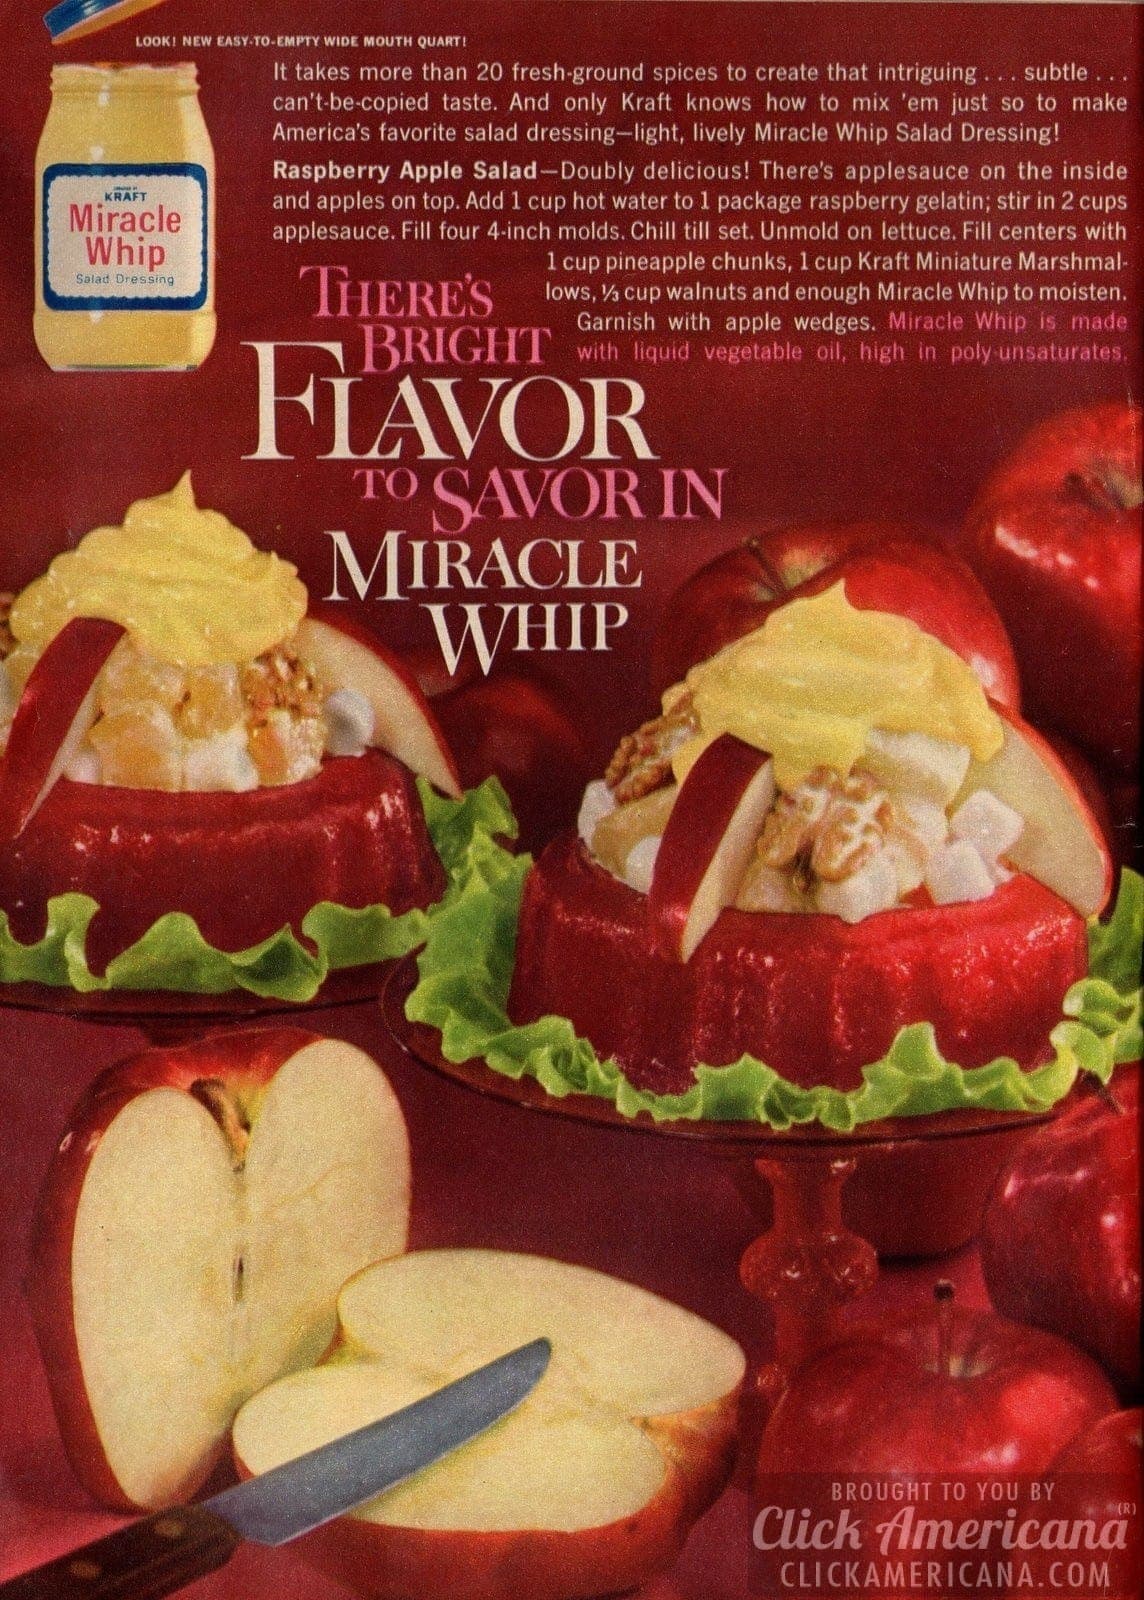 Raspberry Apple Salad with Miracle Whip (1962)